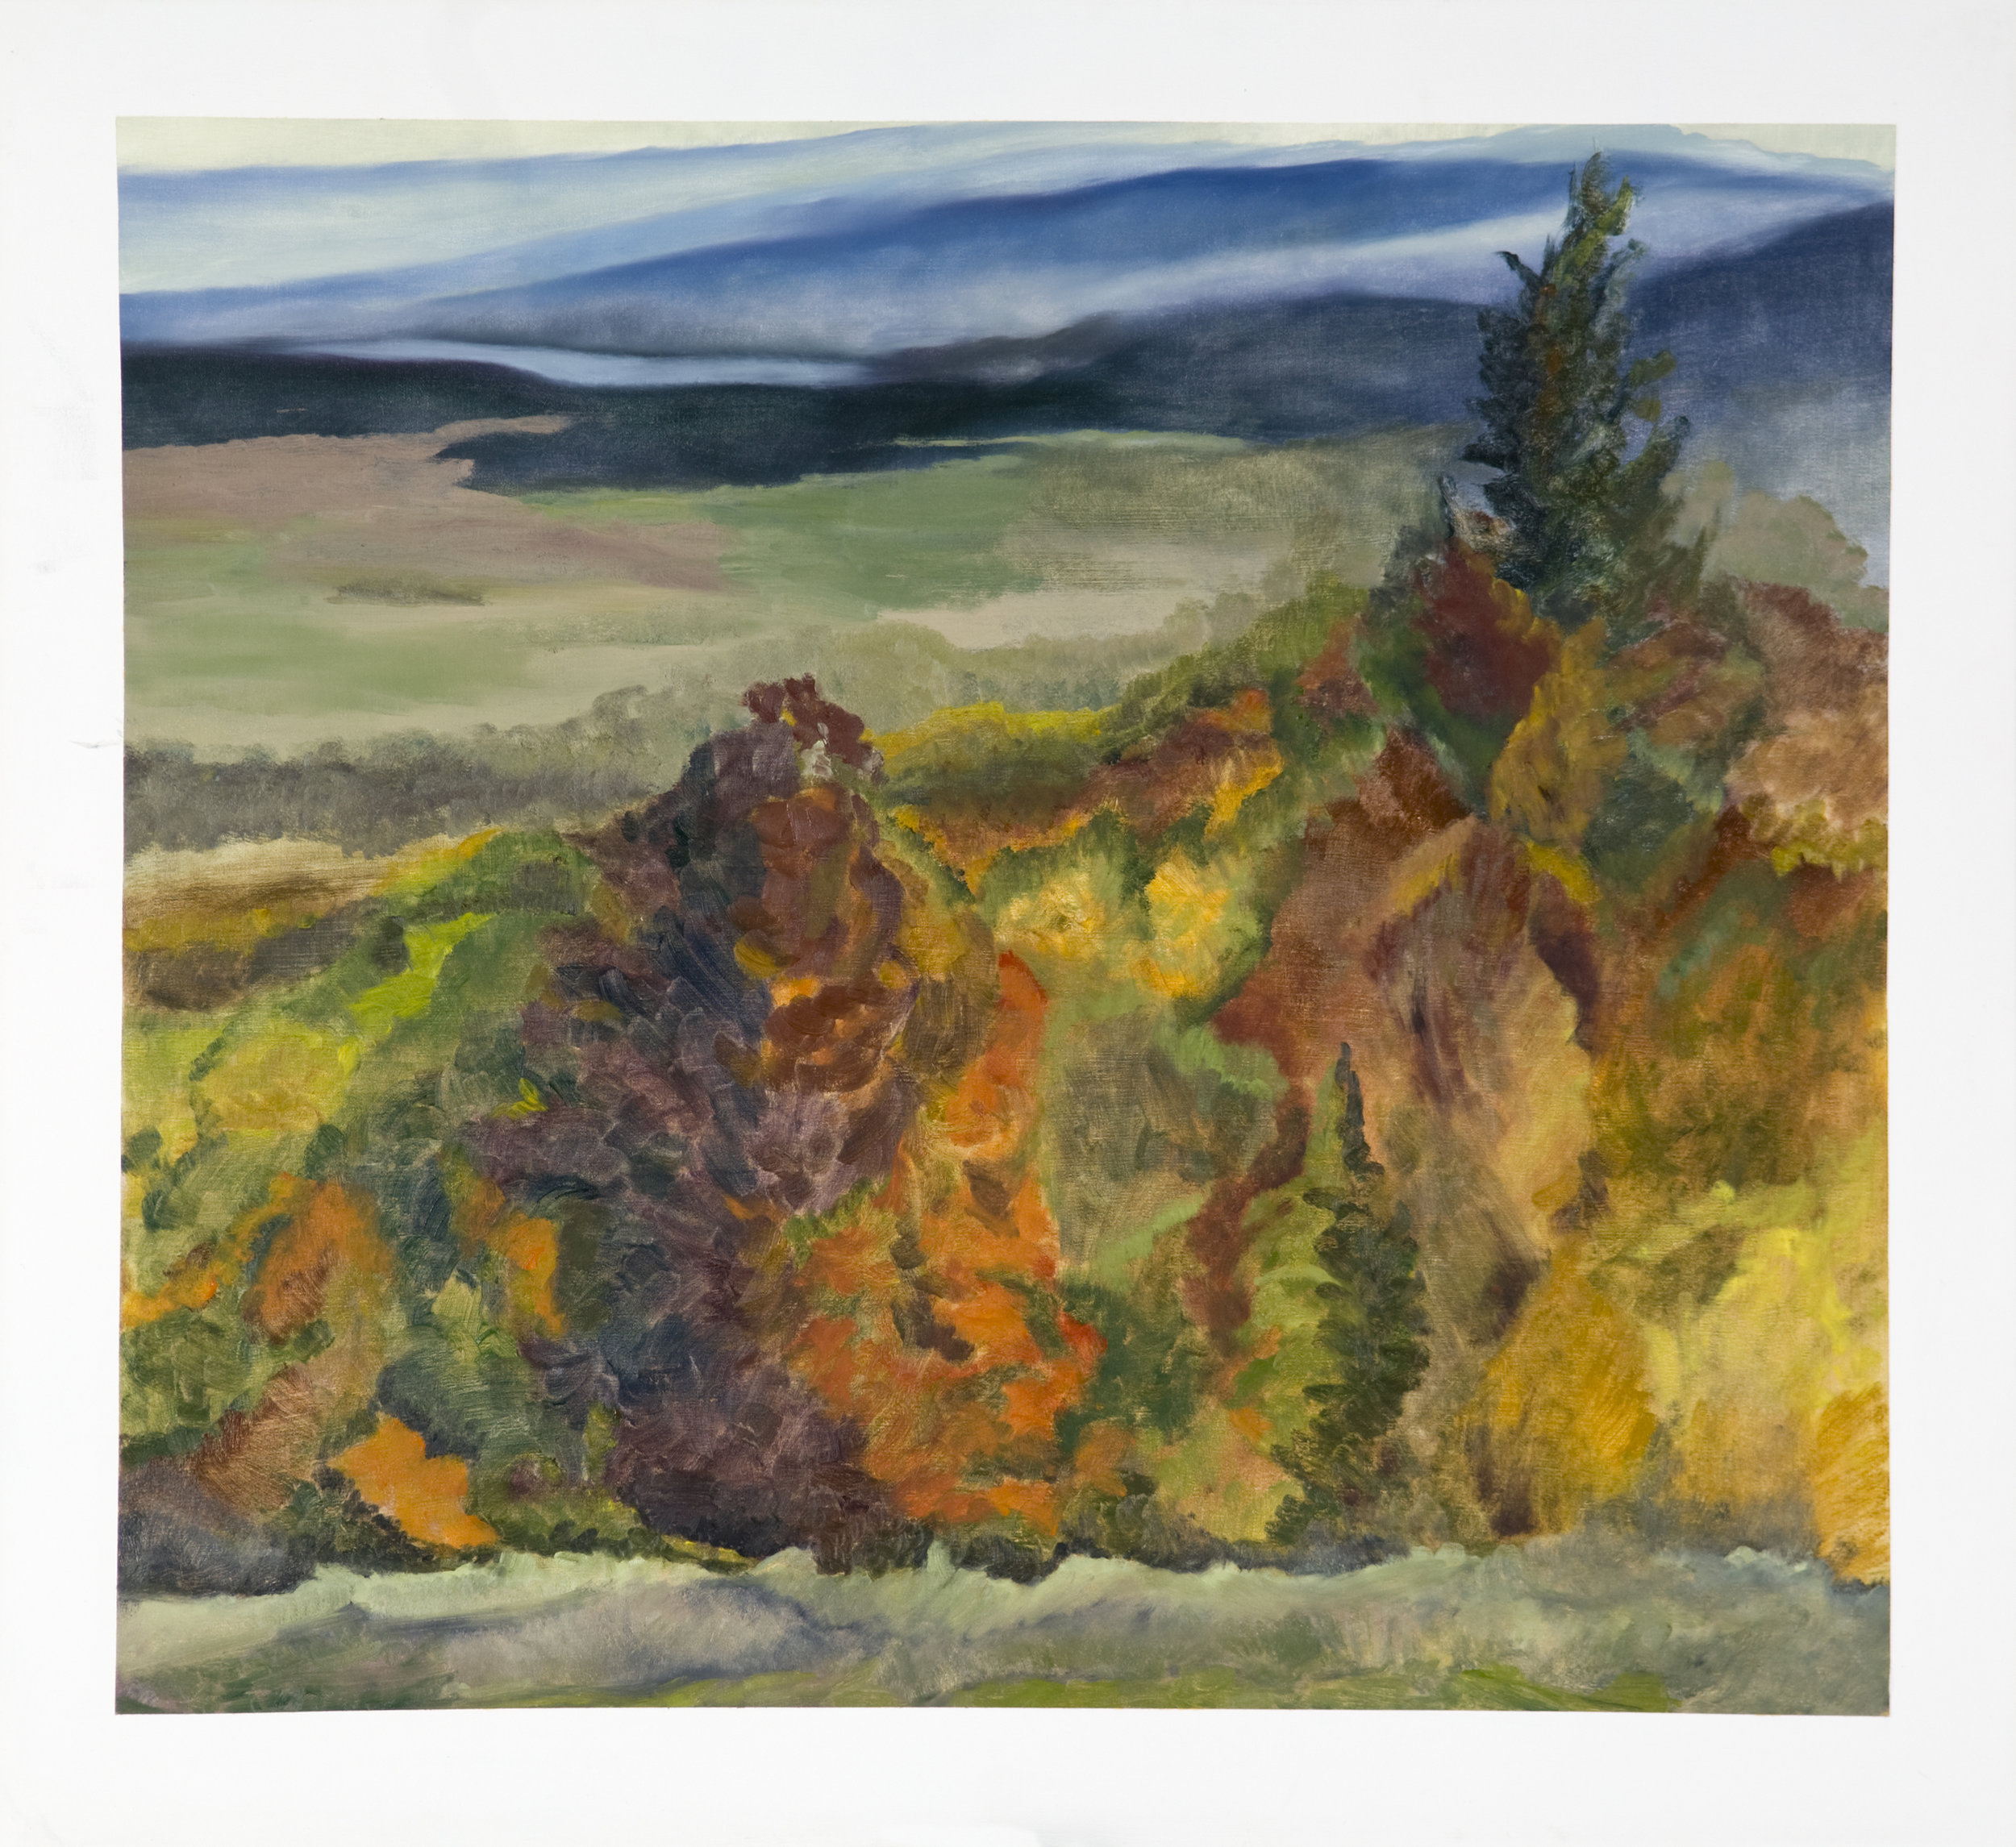 Keswick Autumn , 1996, Oil on Canvas, 38 x 40 inches (McCain Foods Corporate Collection)